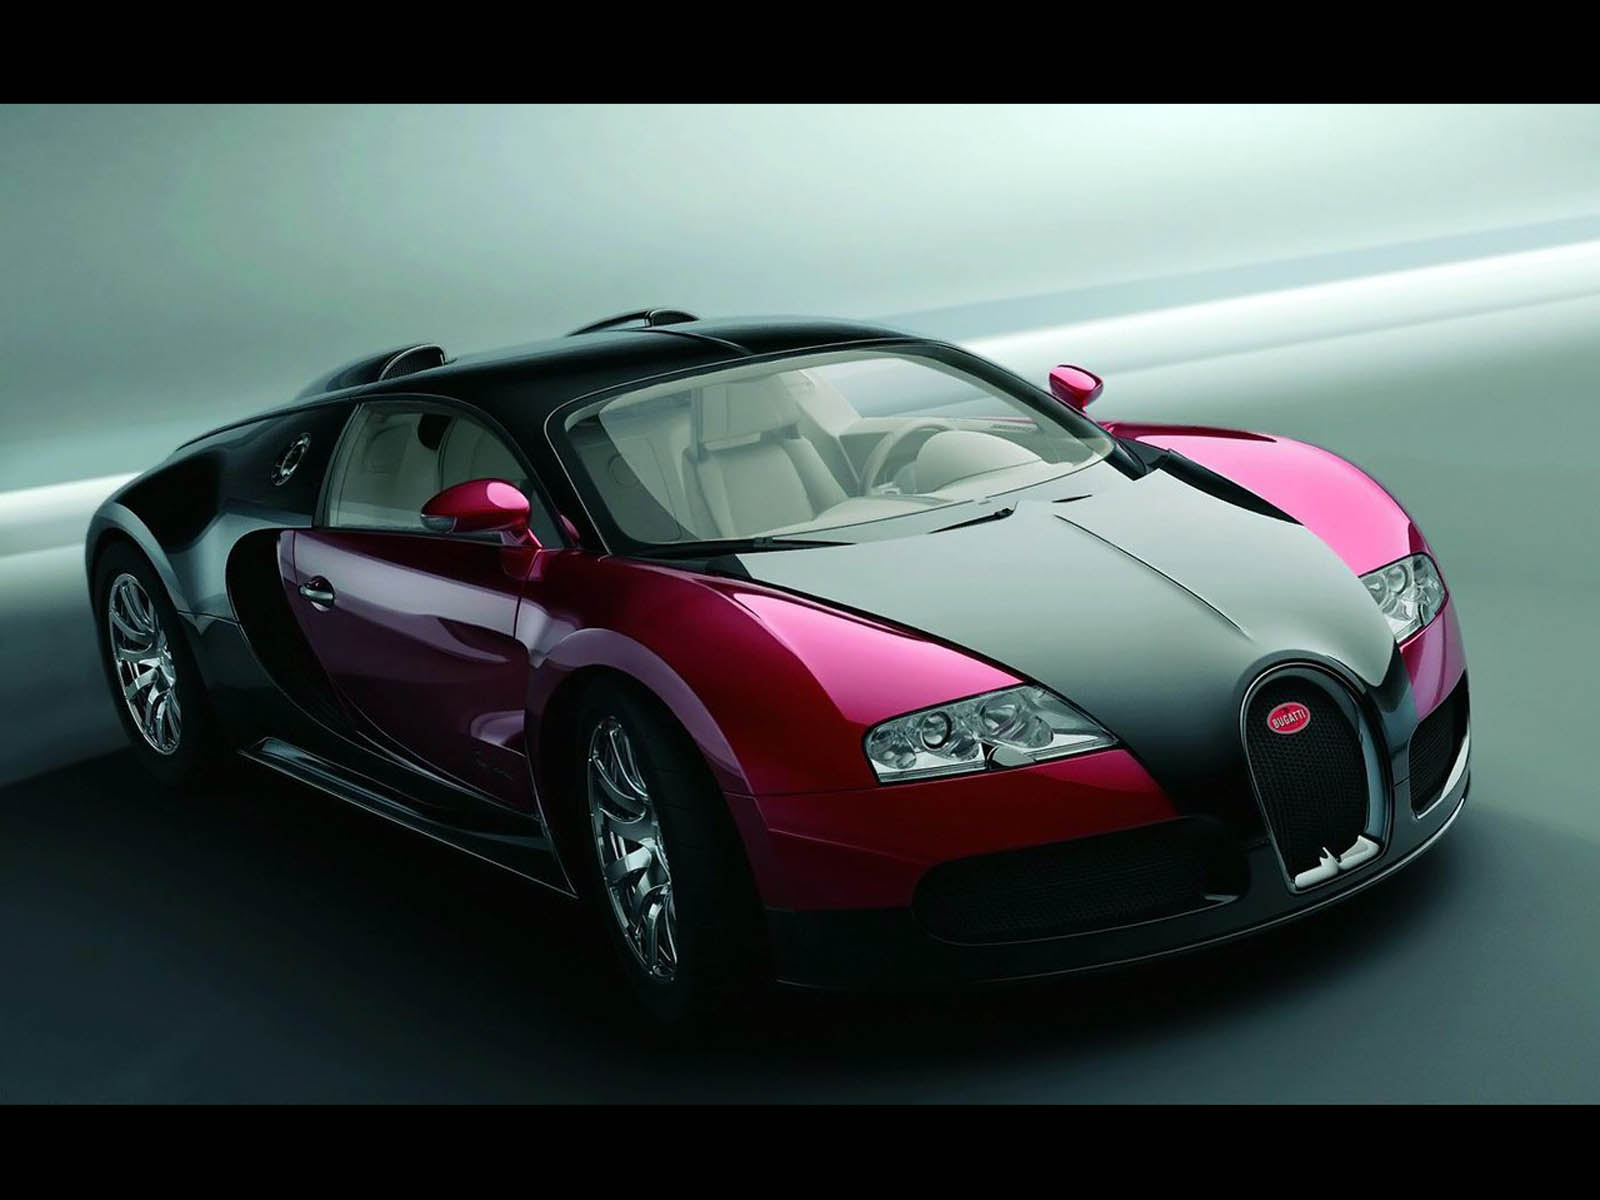 Bugatti Veyron 26 Free Hd Car Wallpaper